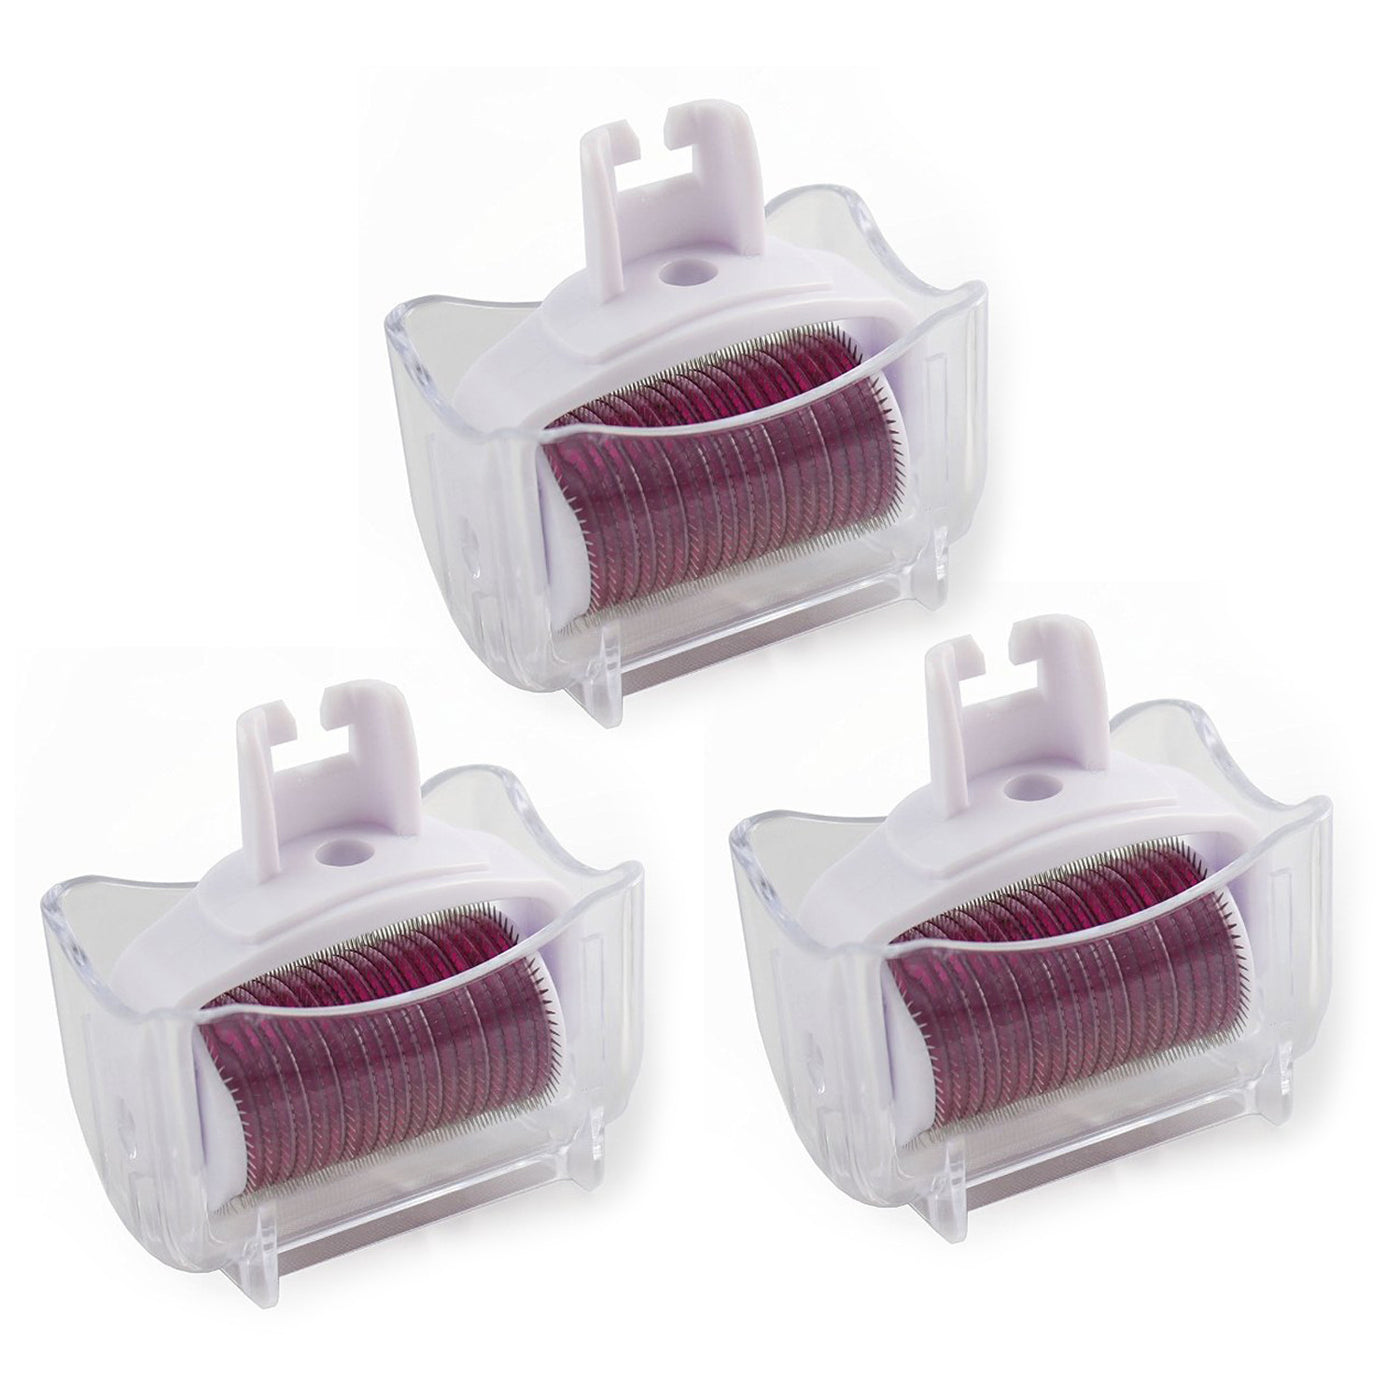 Replacement 1.5 mm Body Roller Head Attachment — 3PK